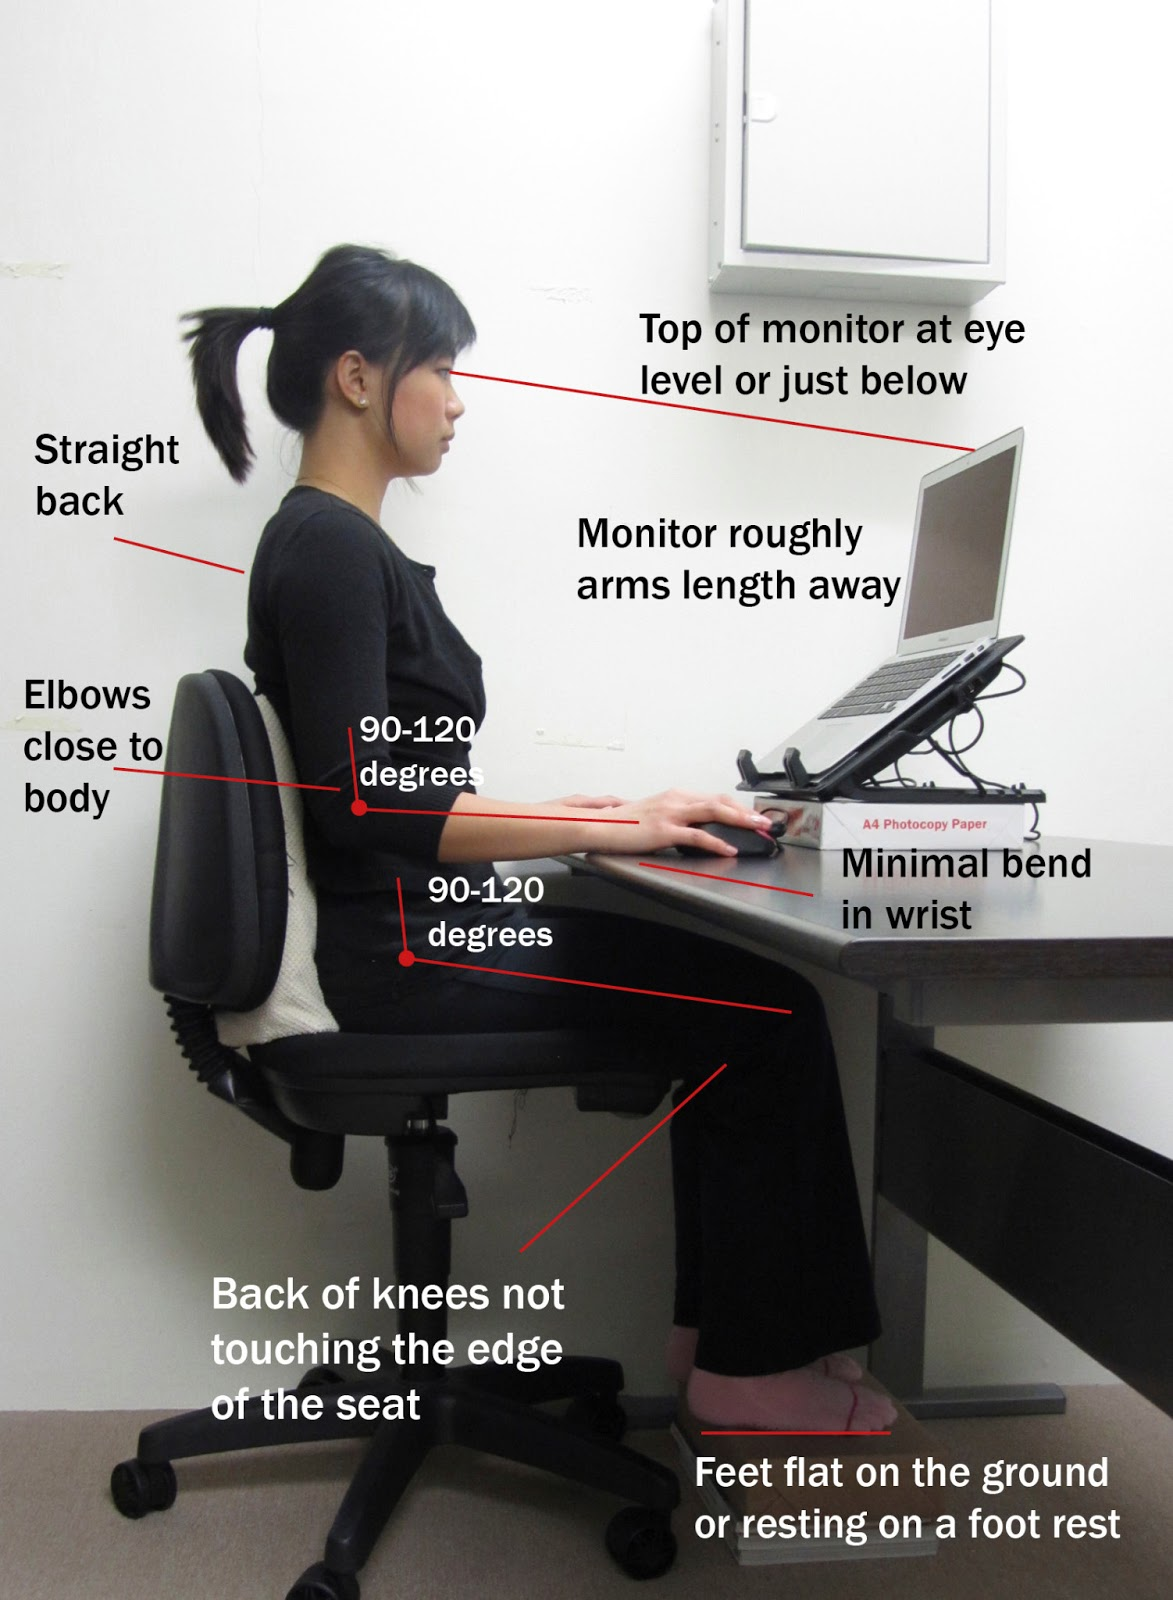 ergonomic chair keyboard position ironing board miracles happen january 2013